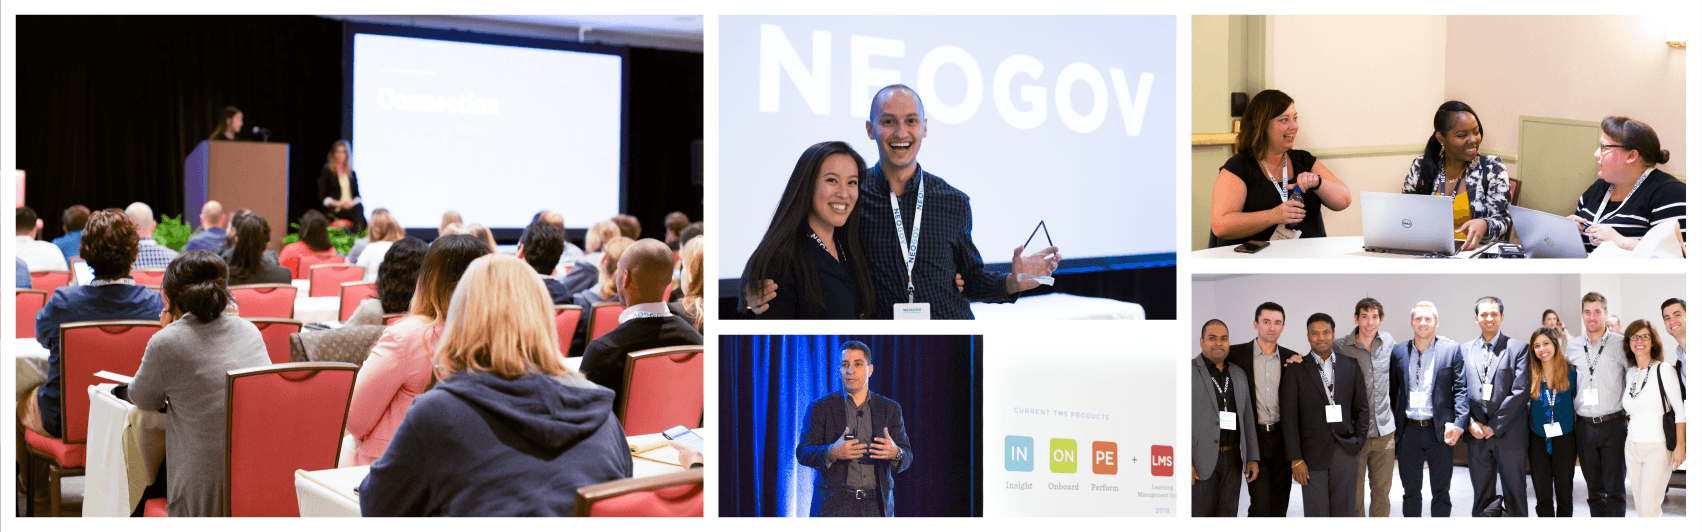 NEOGOV's 16th Annual User Conference Draws Record Turnout